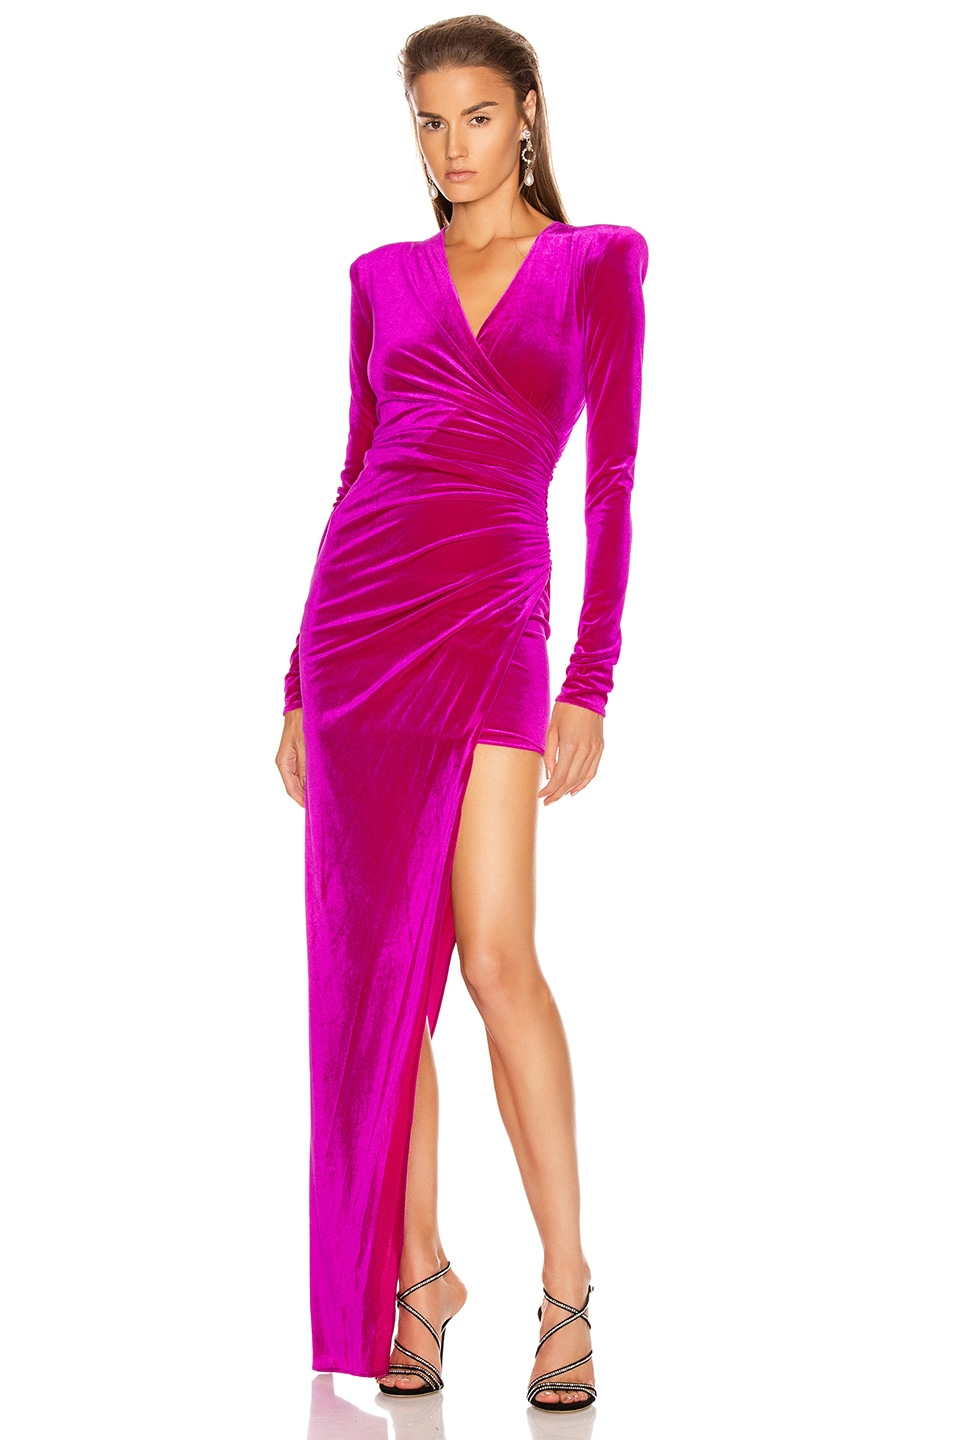 Image 1 of Alexandre Vauthier for FWRD Ruched Velvet Gown in Fuchsia